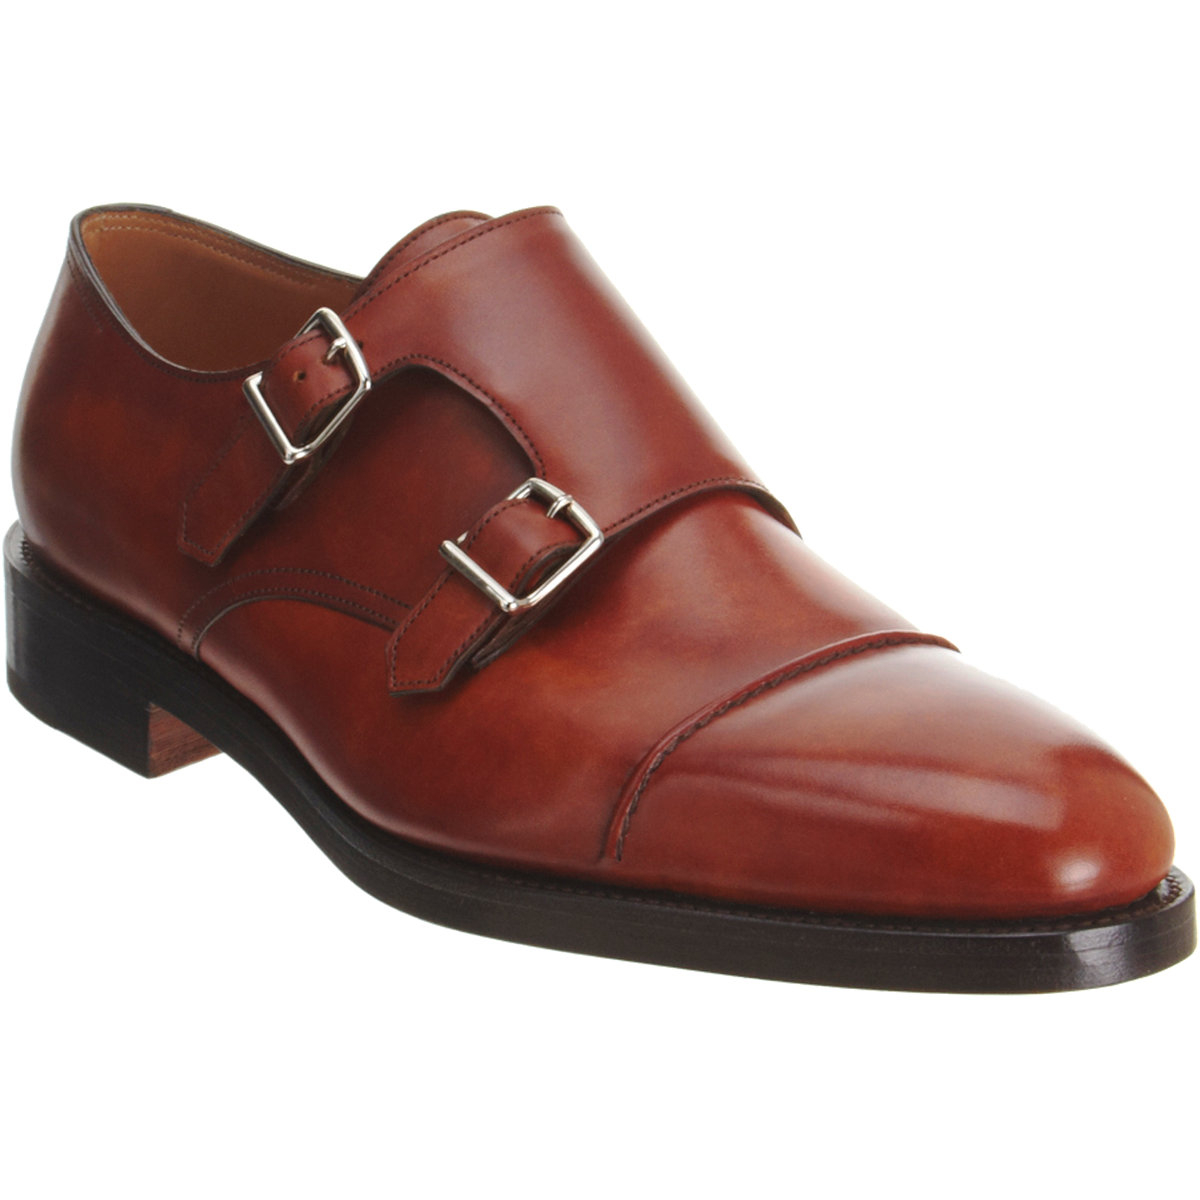 John Lobb Shoes >> john lobb john lobb william ii double monk shoes in brown for men lyst